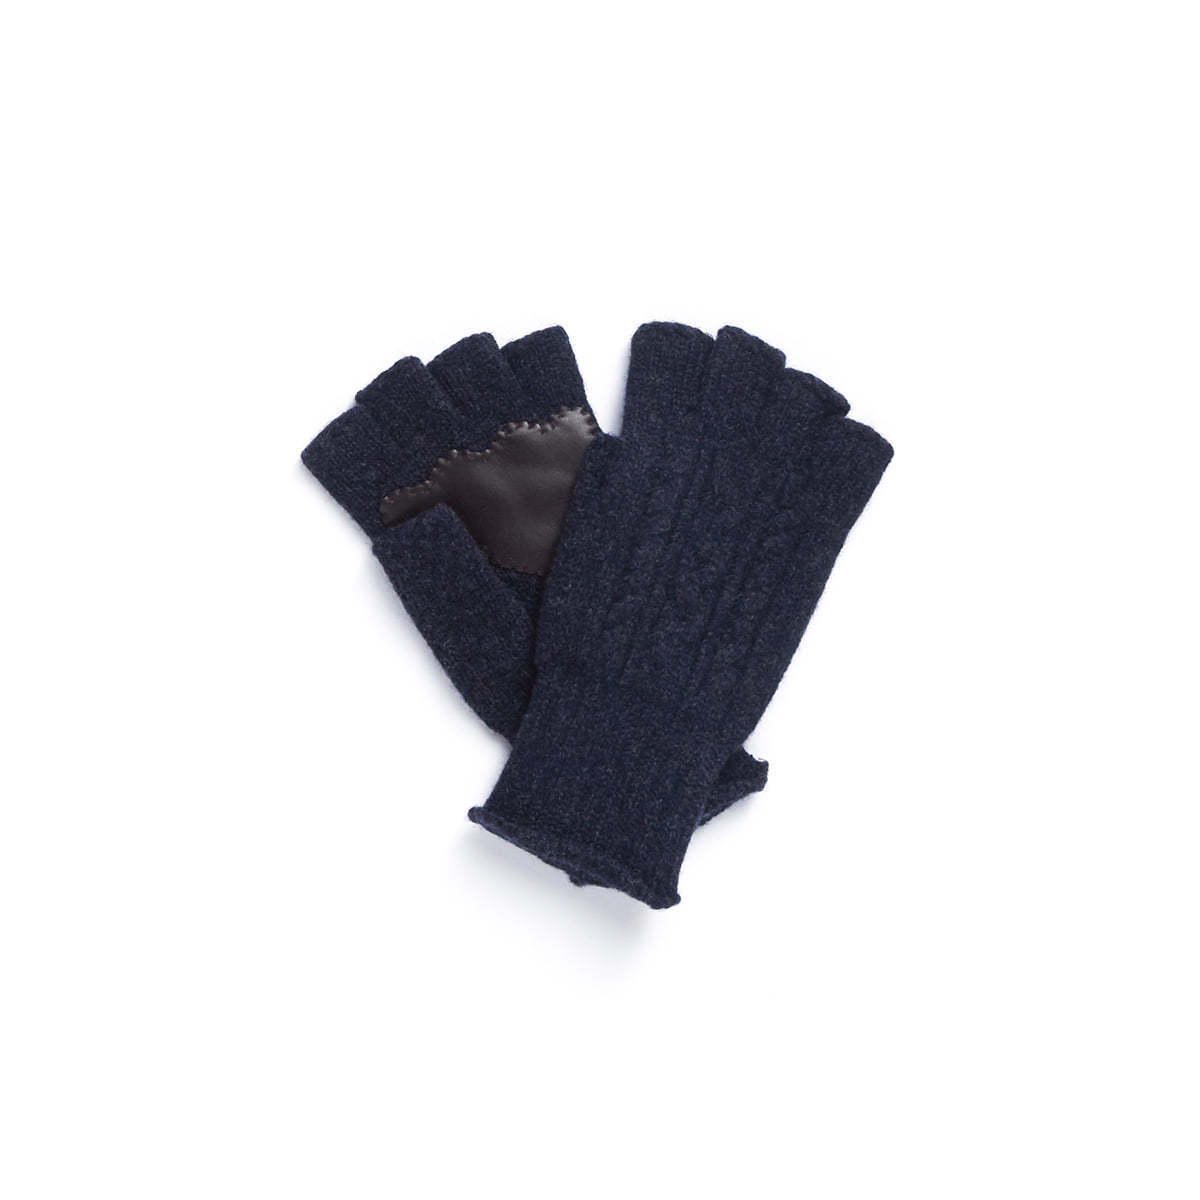 SURVIVAL GLOVES (Navy)